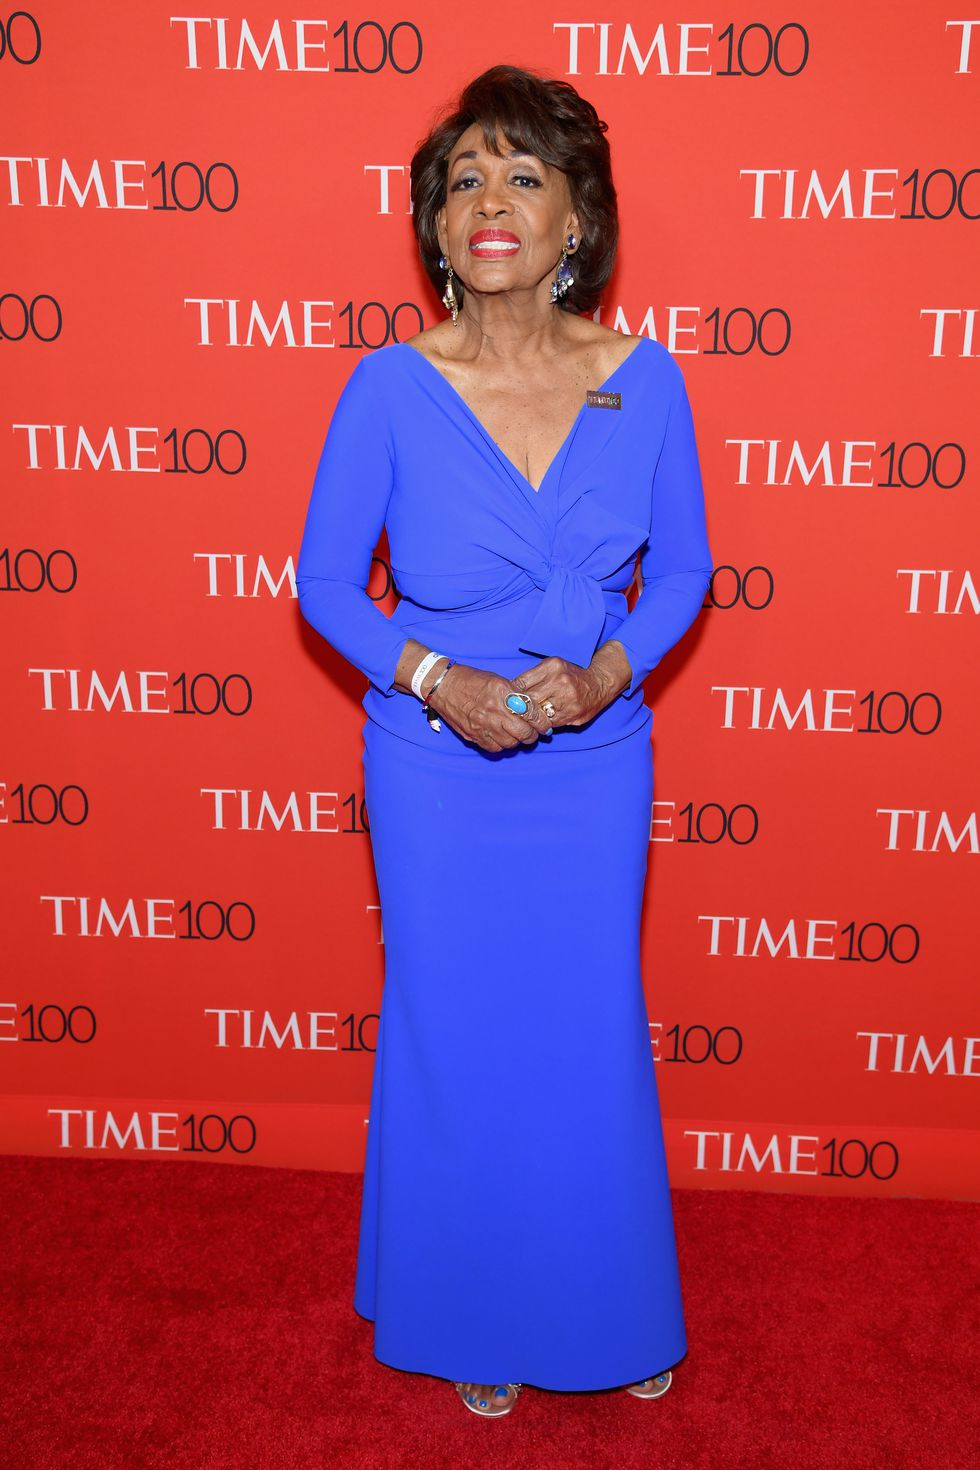 TIME 100 GALA 2018 RED CARPET MAXINE WATERS.jpg